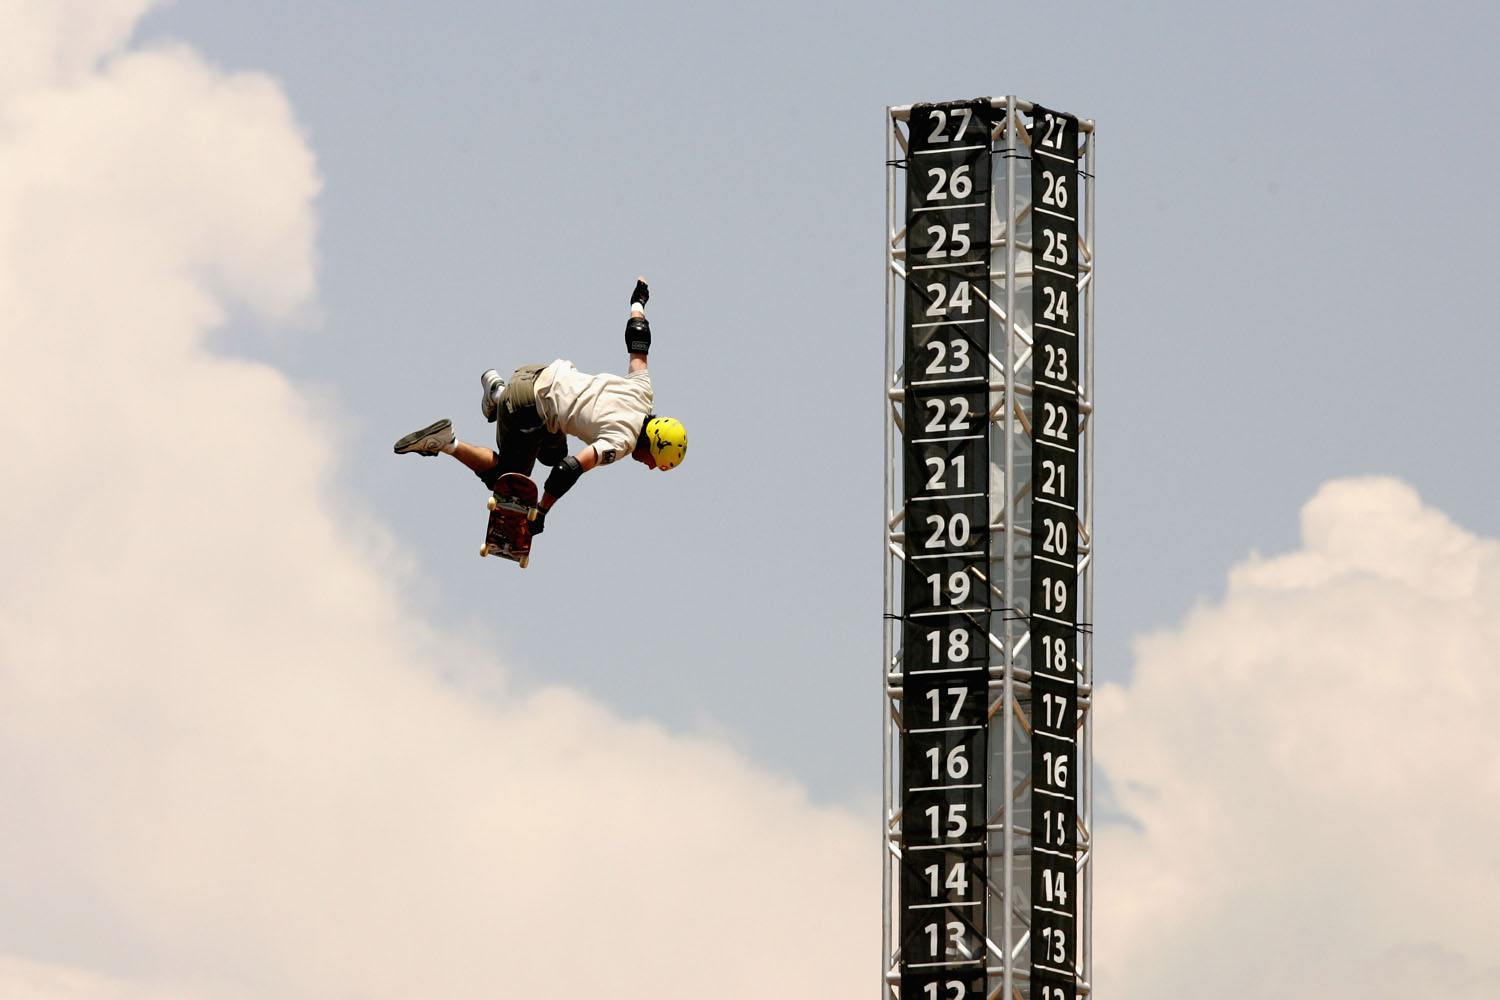 Andy Macdonald performs a trick in the Skateboard Big Air competition during X Games 11 on August 7, 2005 at the Staples Center in Los Angeles, California.